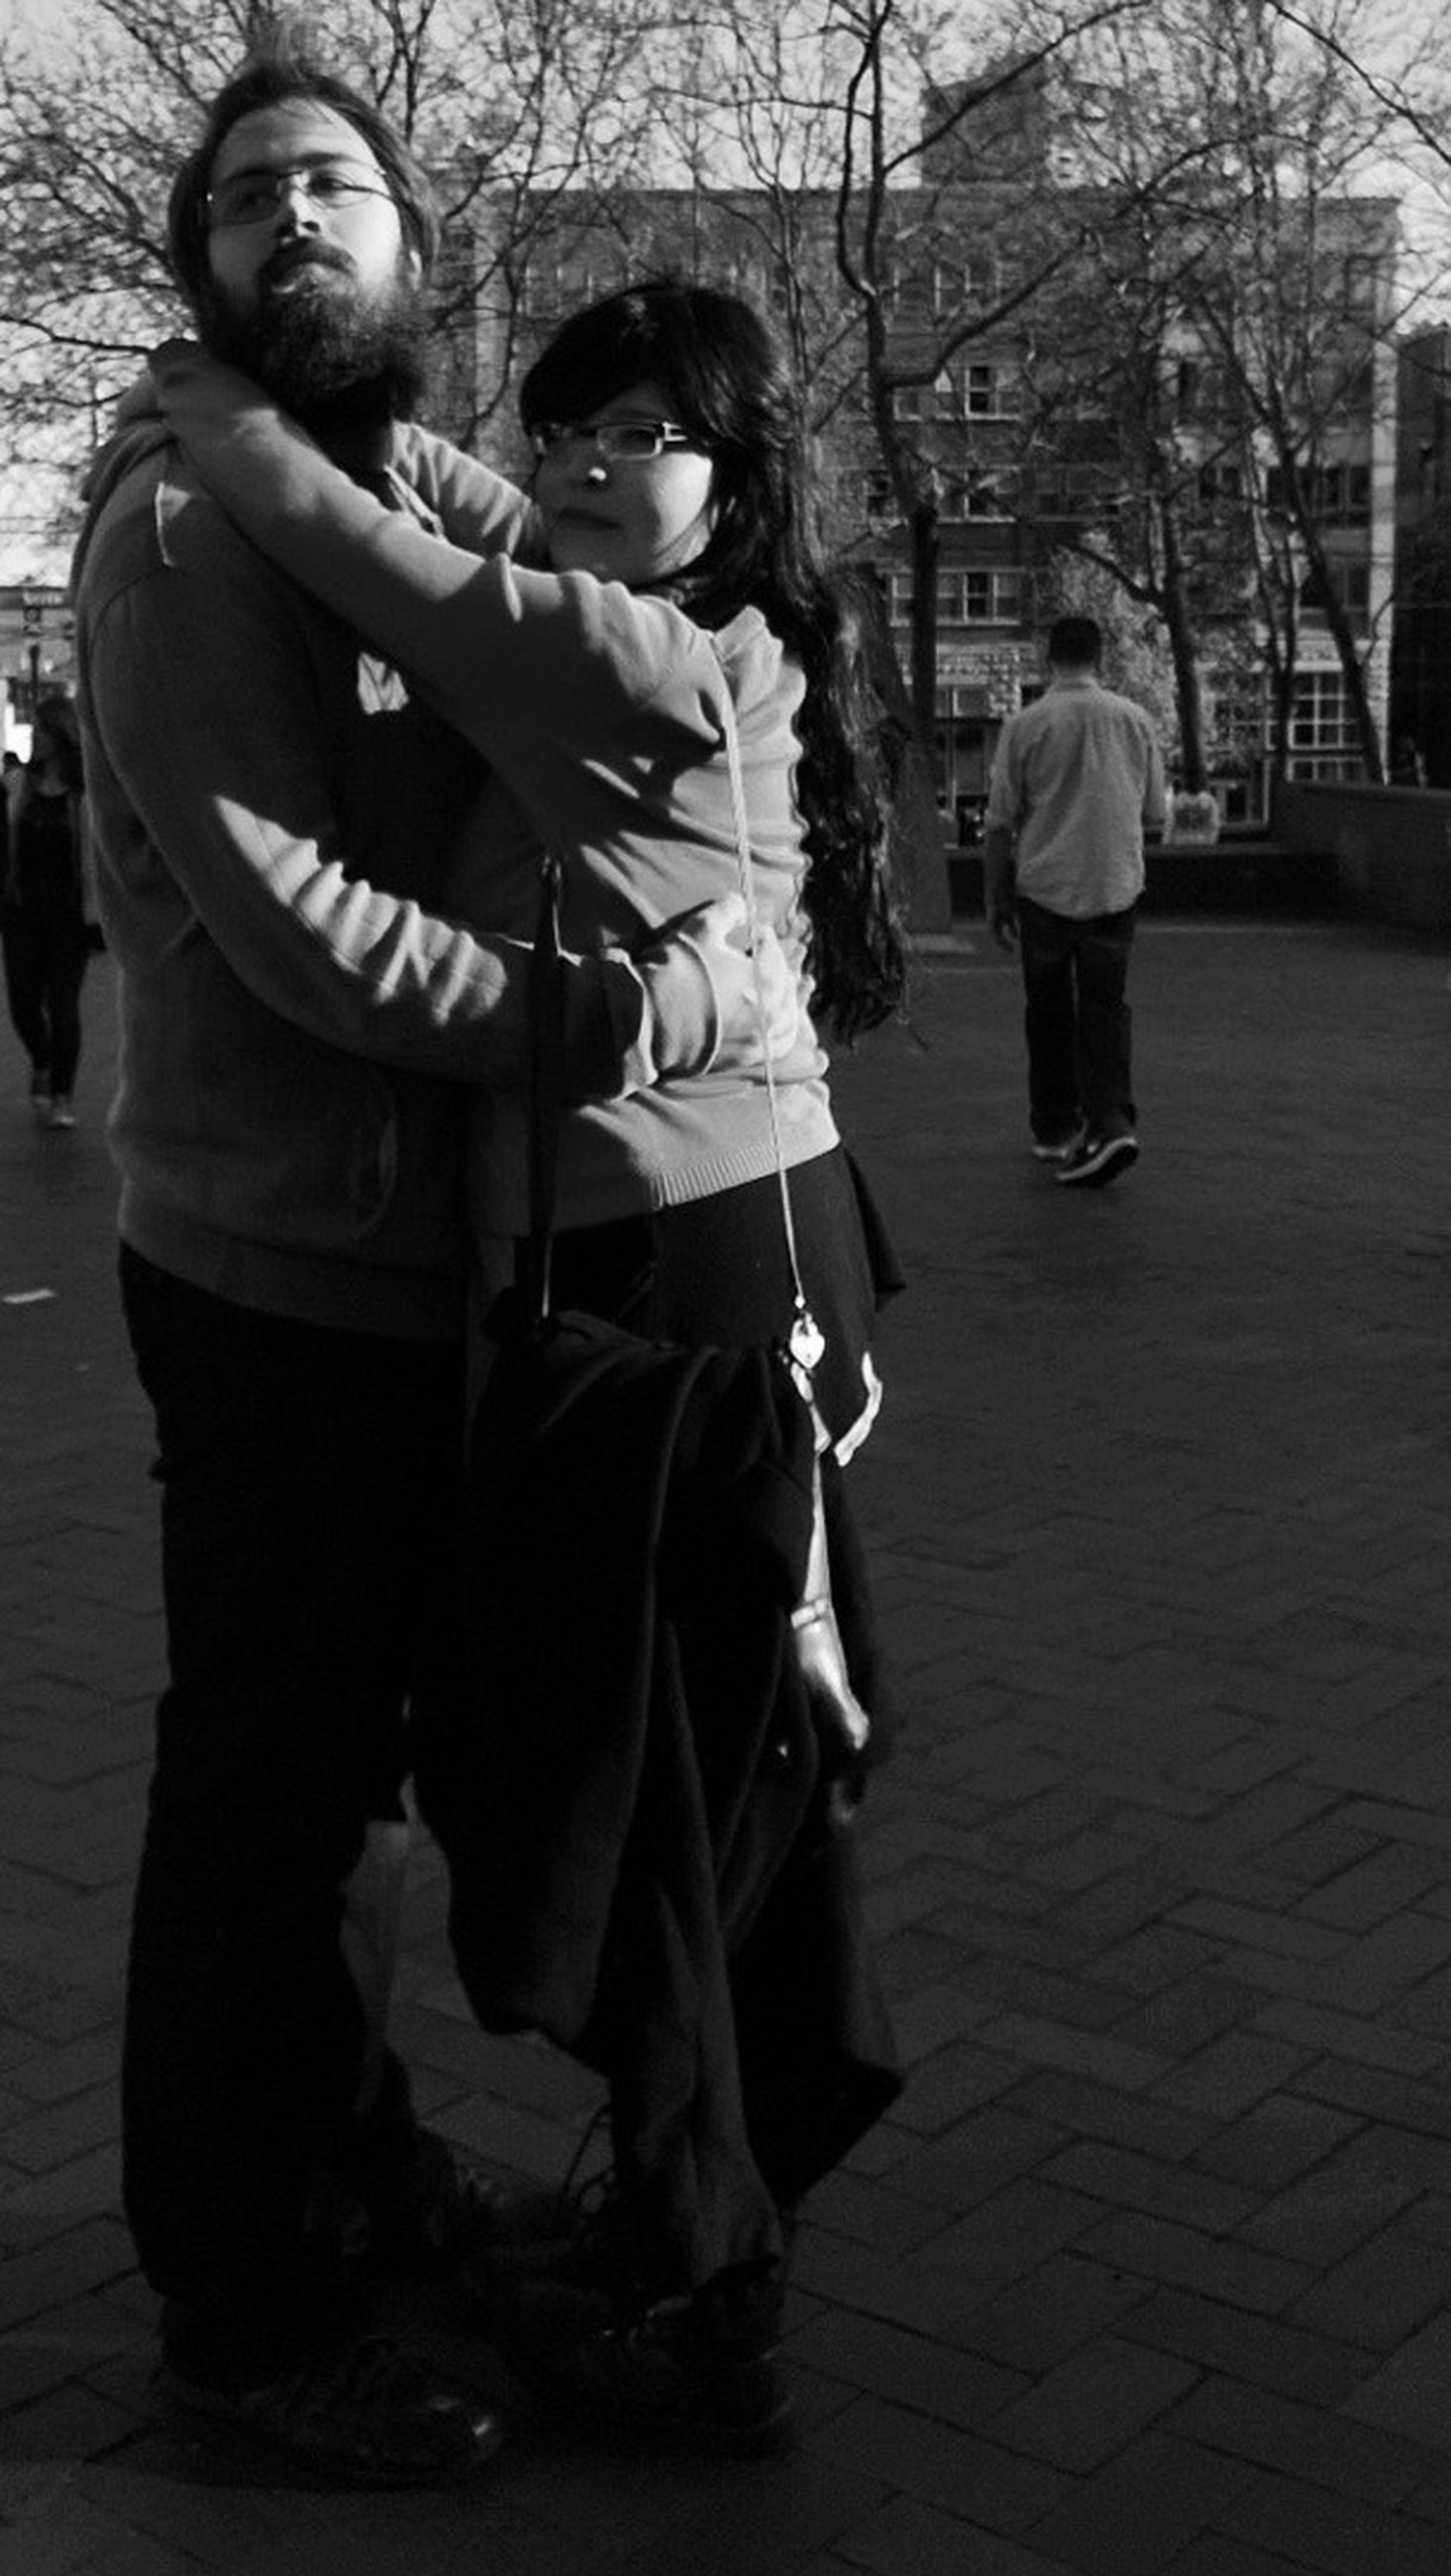 lifestyles, casual clothing, full length, leisure activity, togetherness, street, men, bonding, sitting, boys, person, childhood, rear view, walking, love, sidewalk, incidental people, outdoors